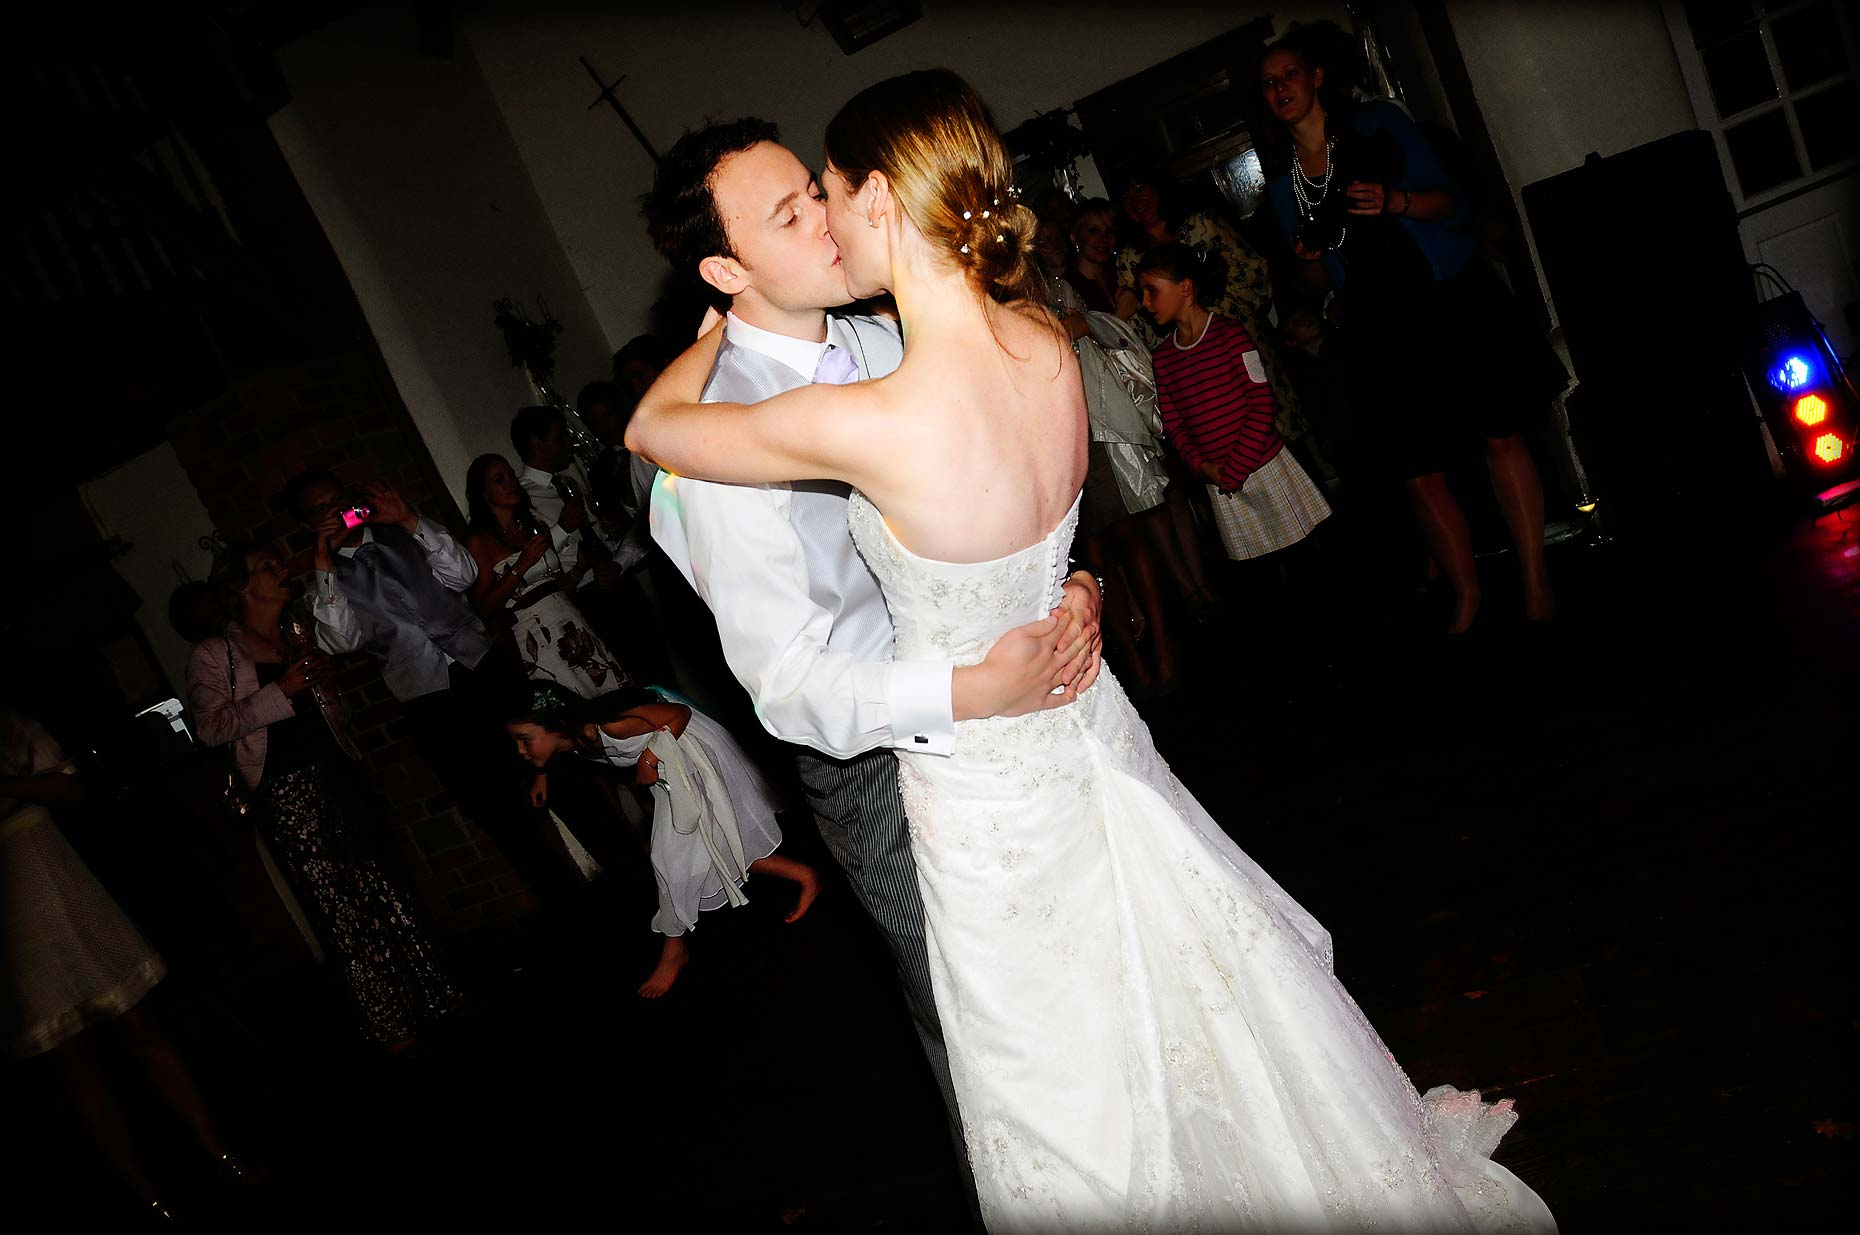 0221-First-Dance-at-The-Coppleridge-Inn-Motcombe-Shaftesbury-Dorset-Wedding.jpg